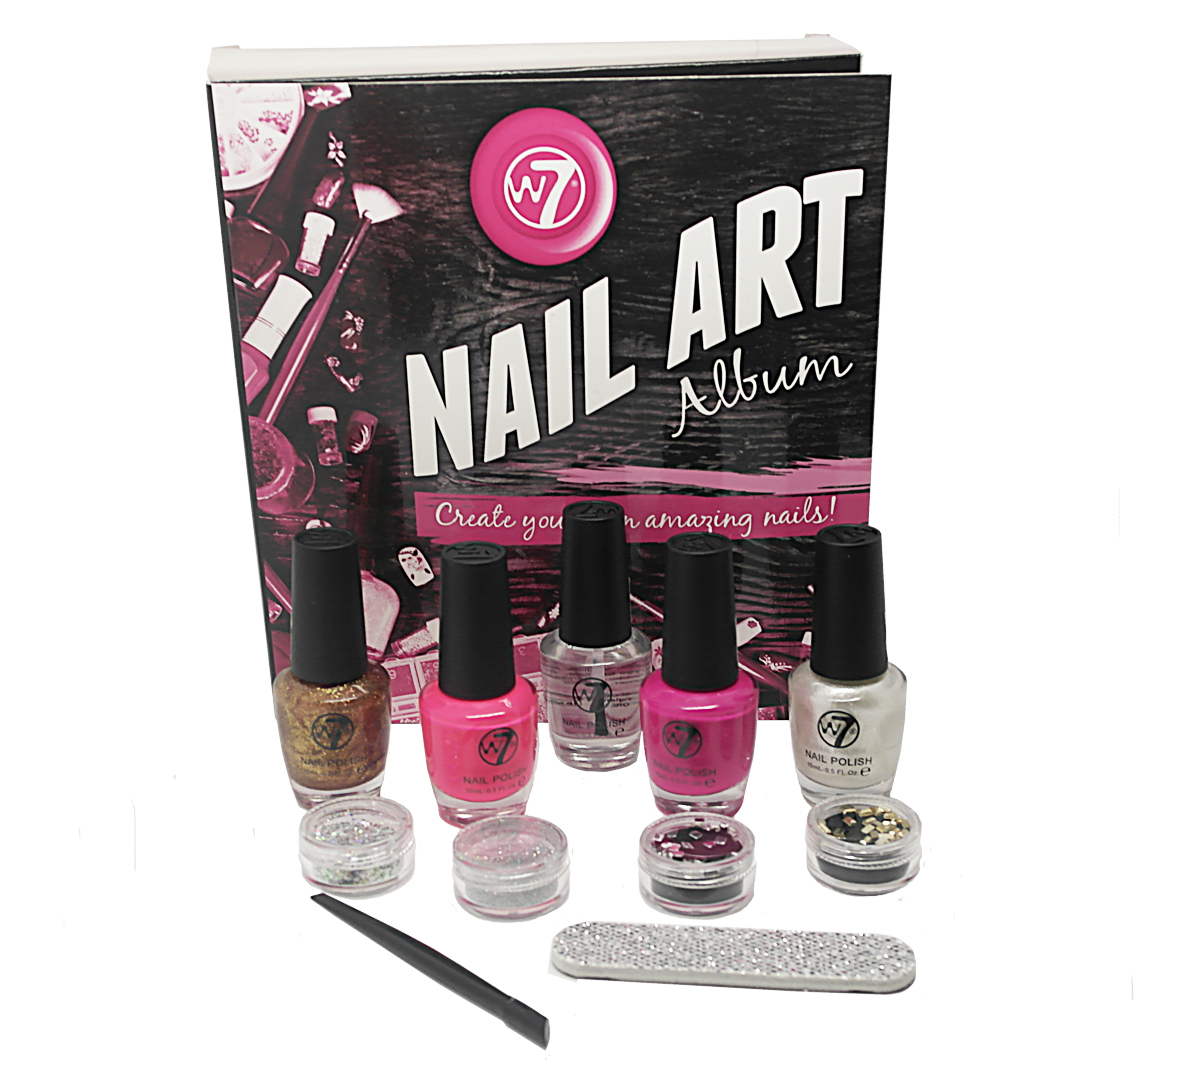 W7 Nail Art Album 20 Piece Nail Art Styling Collection